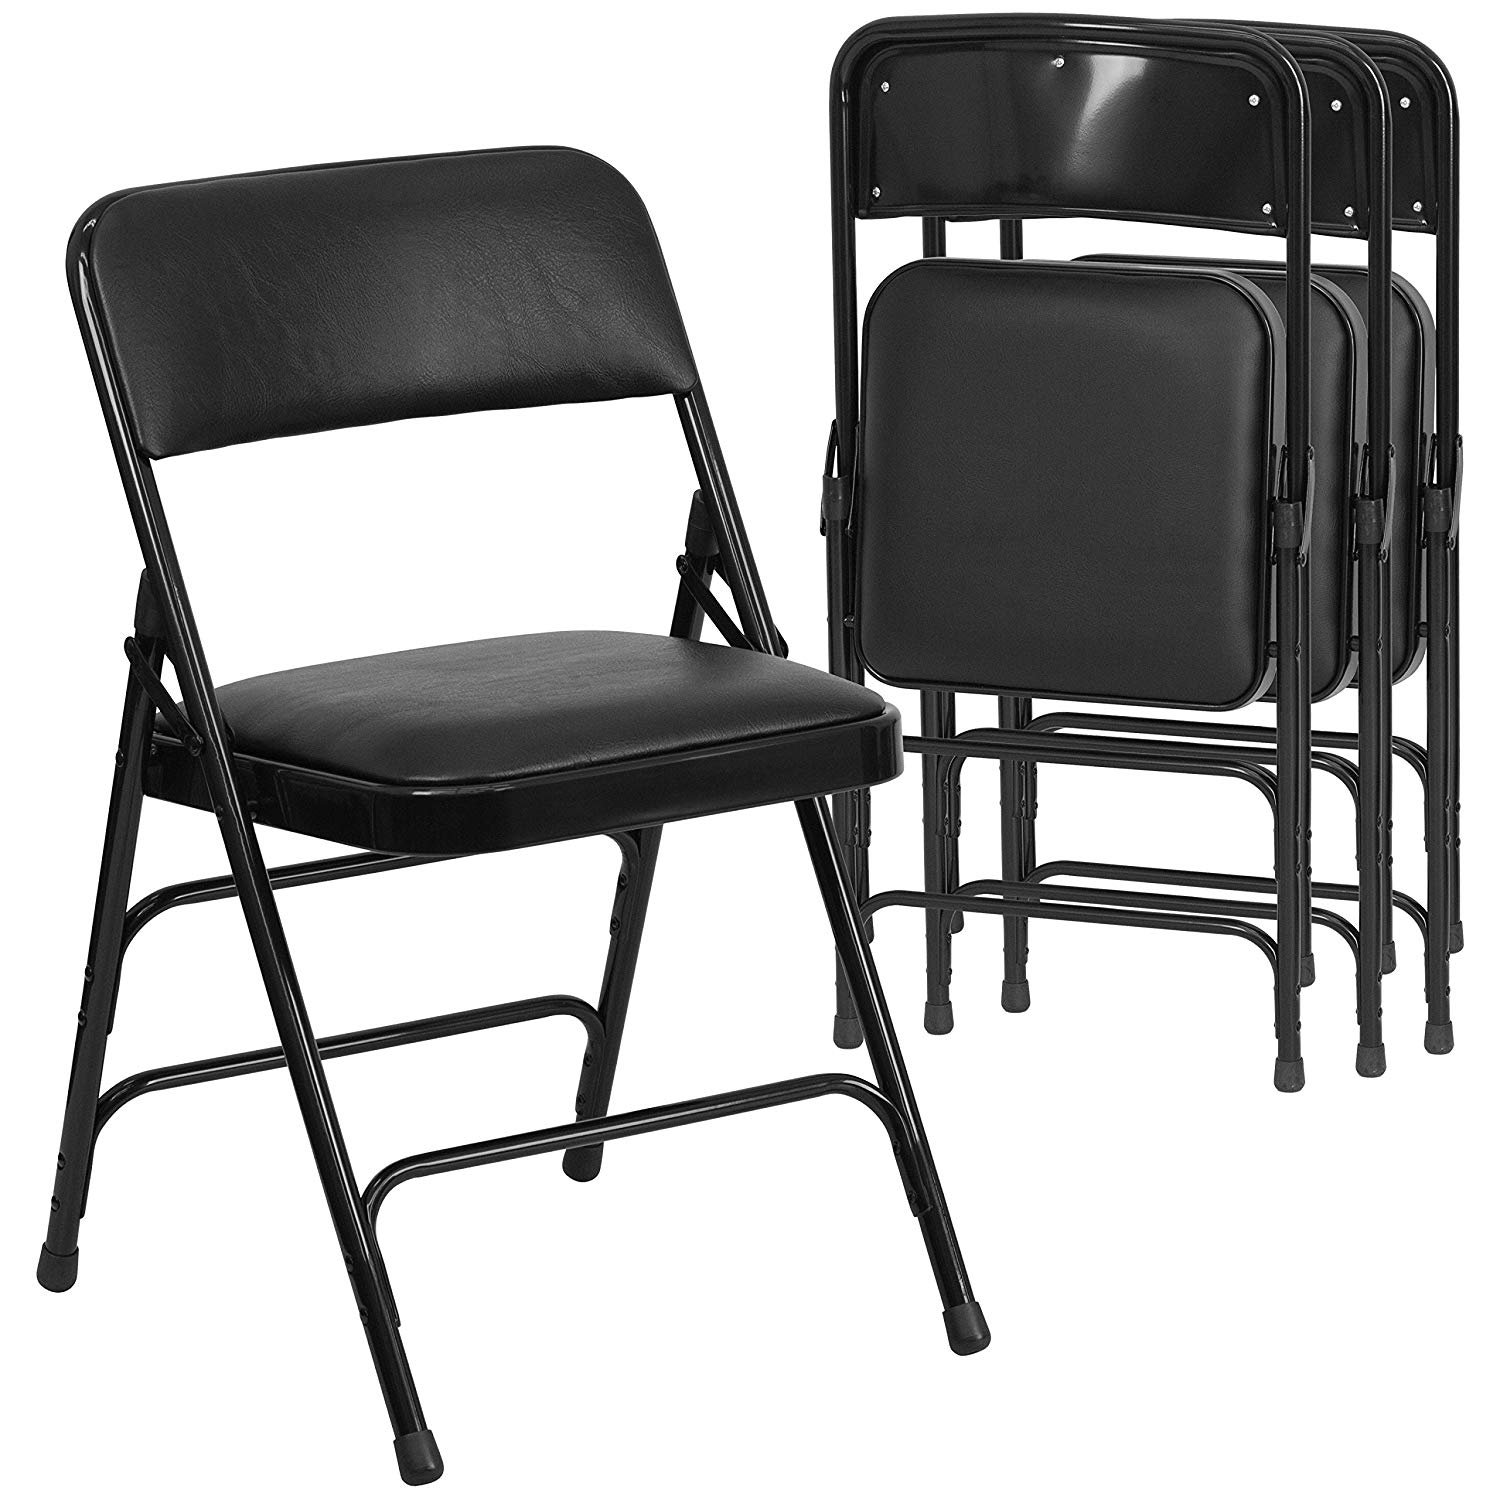 Folding Chair Executive Corporate Blue for Rent  Party